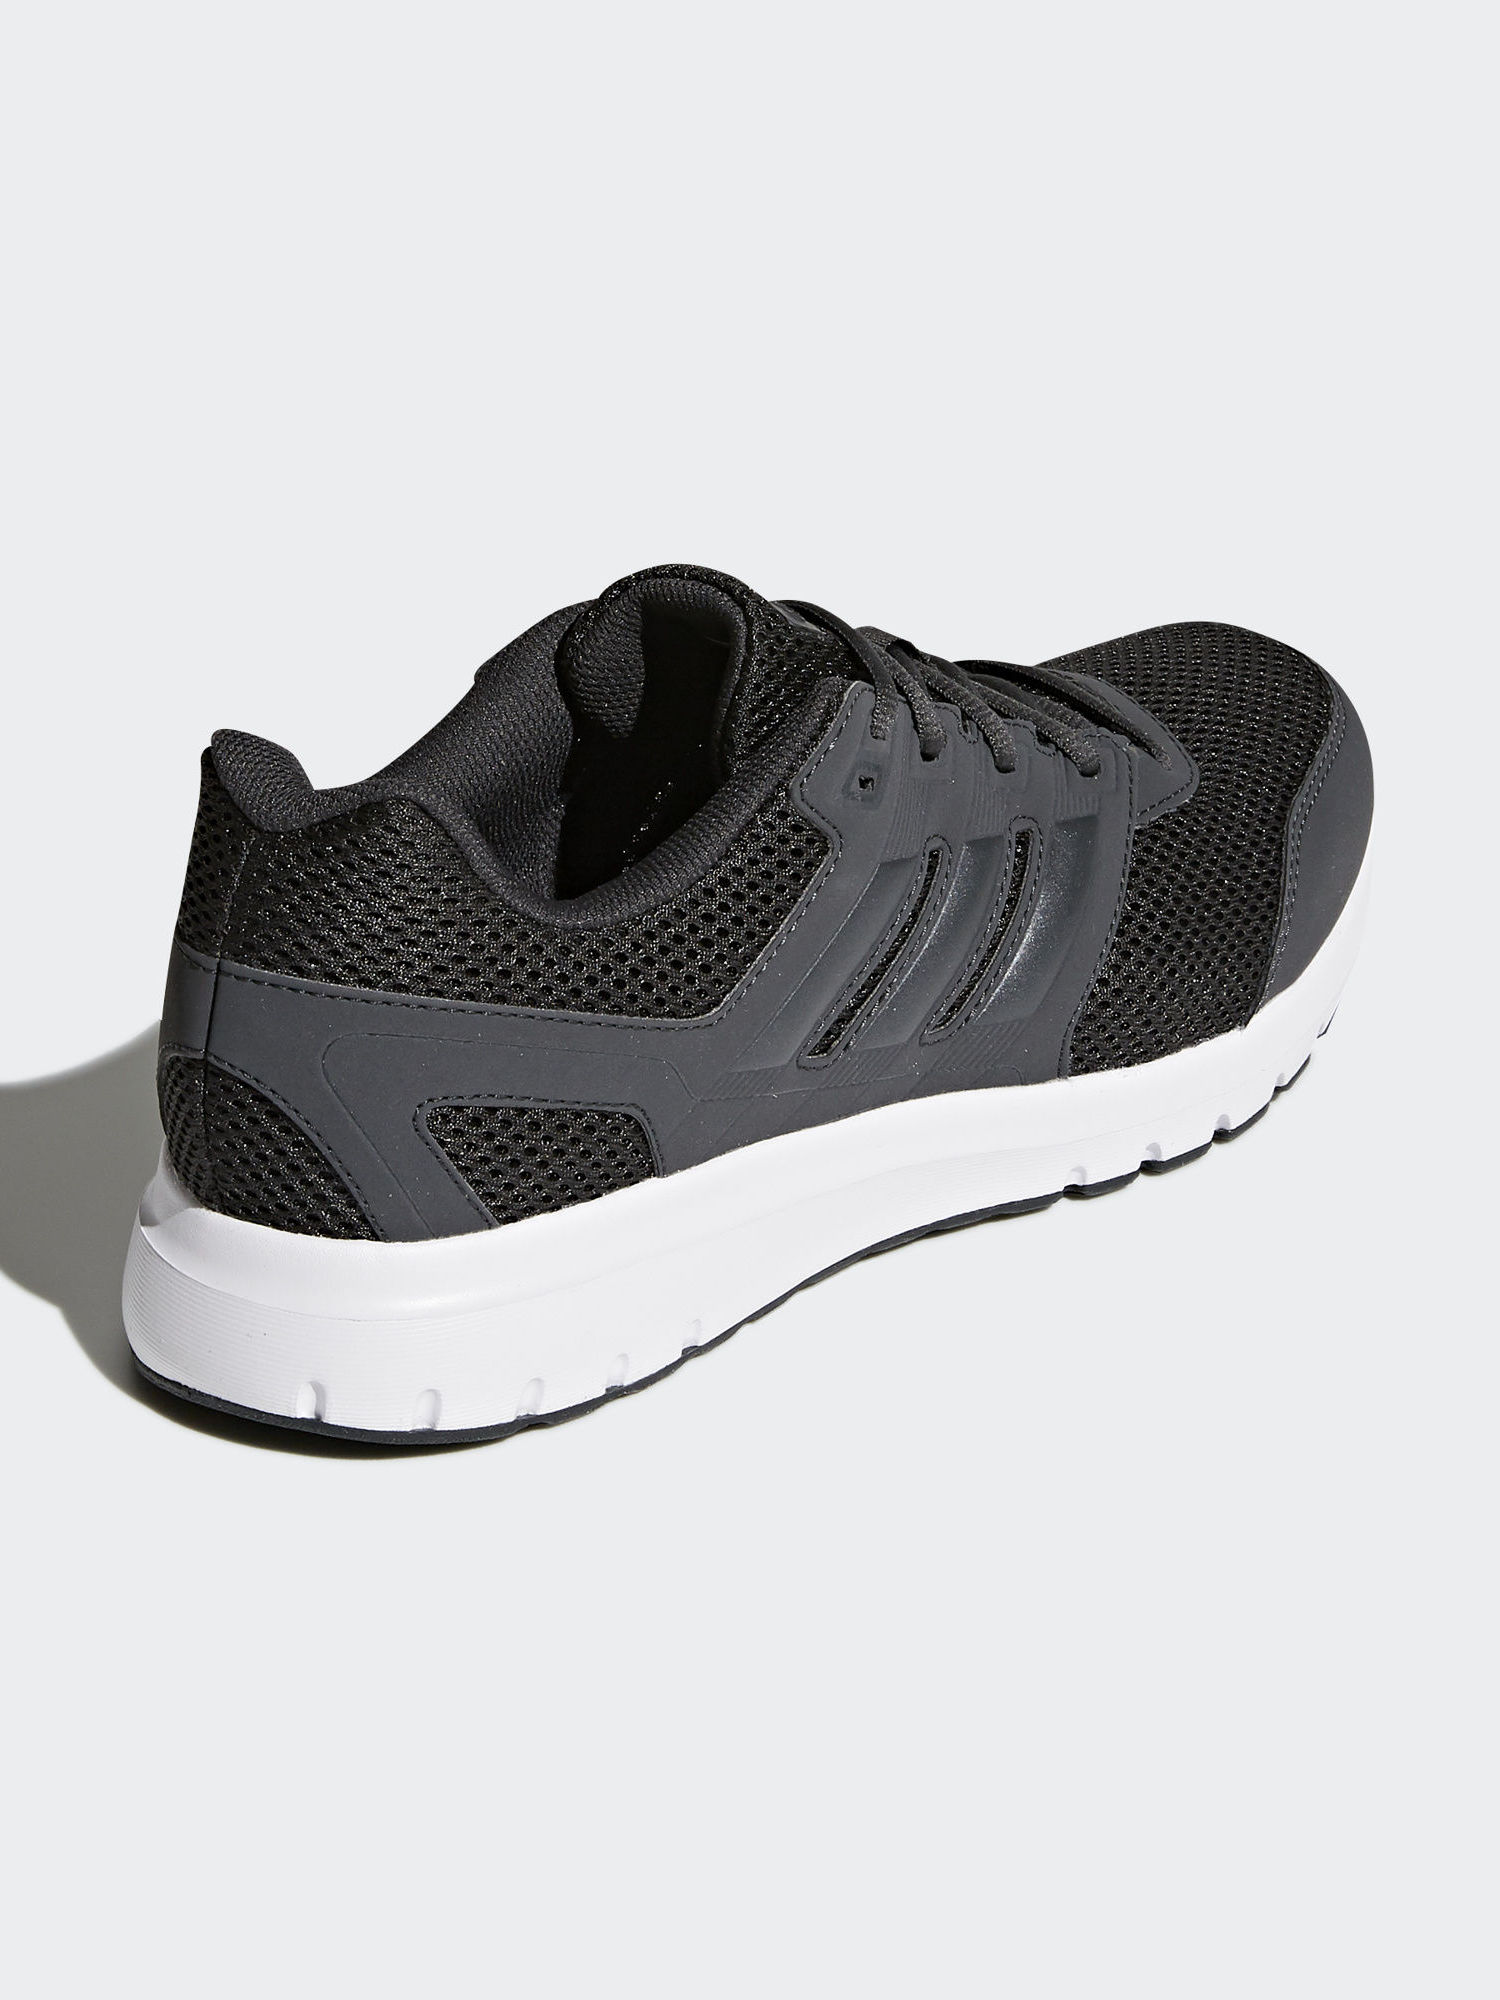 super popular c6417 f3ca7 Adidas-running-shoes-sneakers-running-shoes-trainers-duramo-